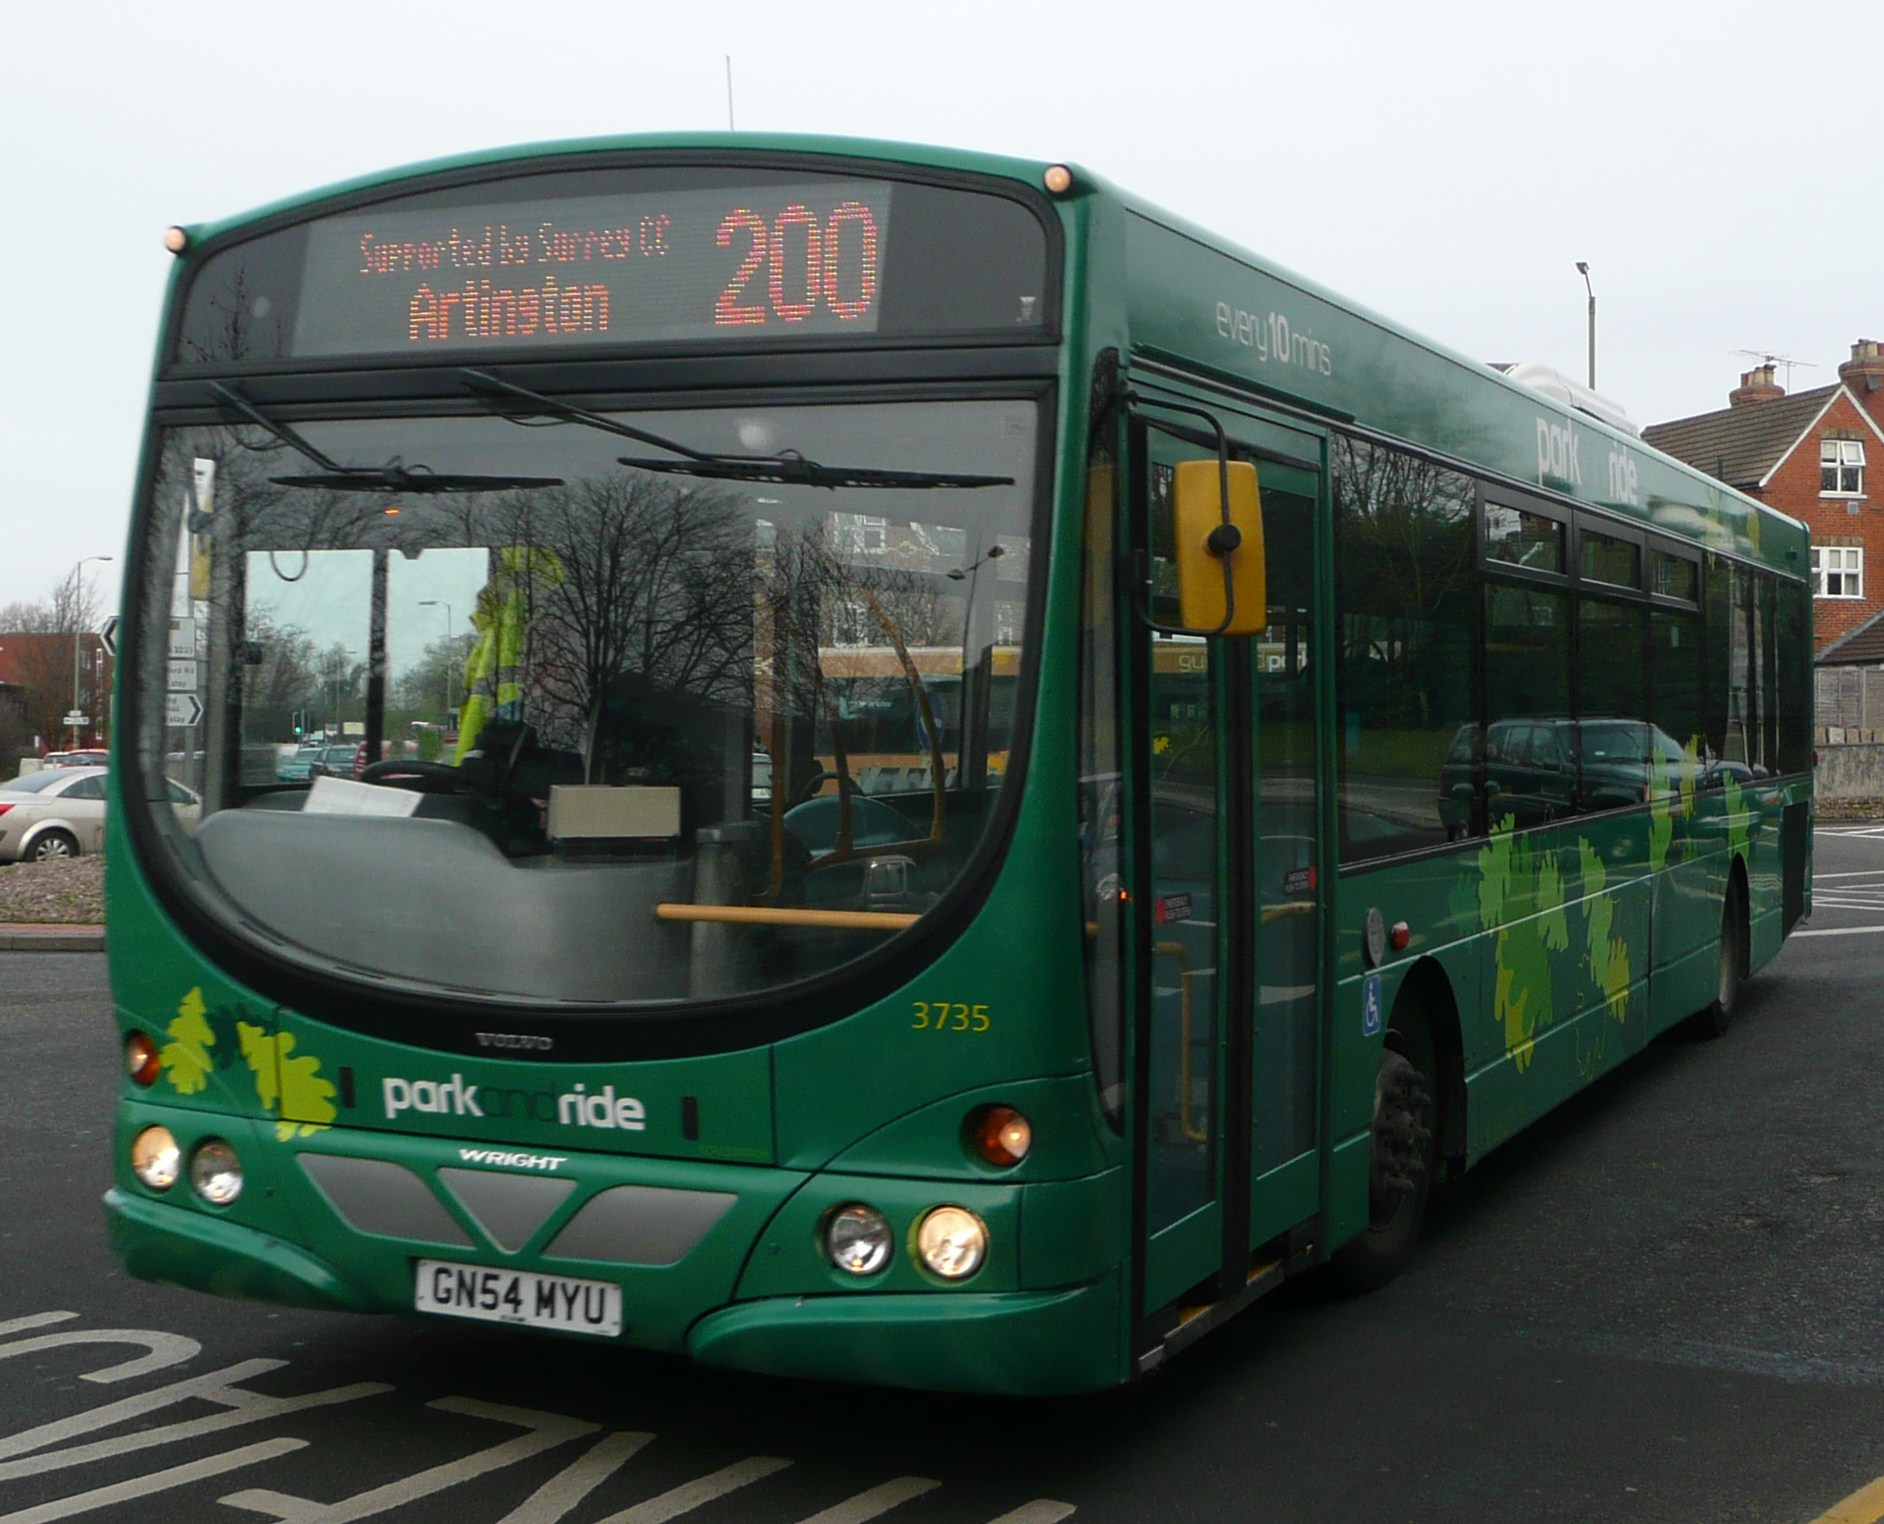 File:Arriva Guildford & West Surrey 3735 GN54 MYU.